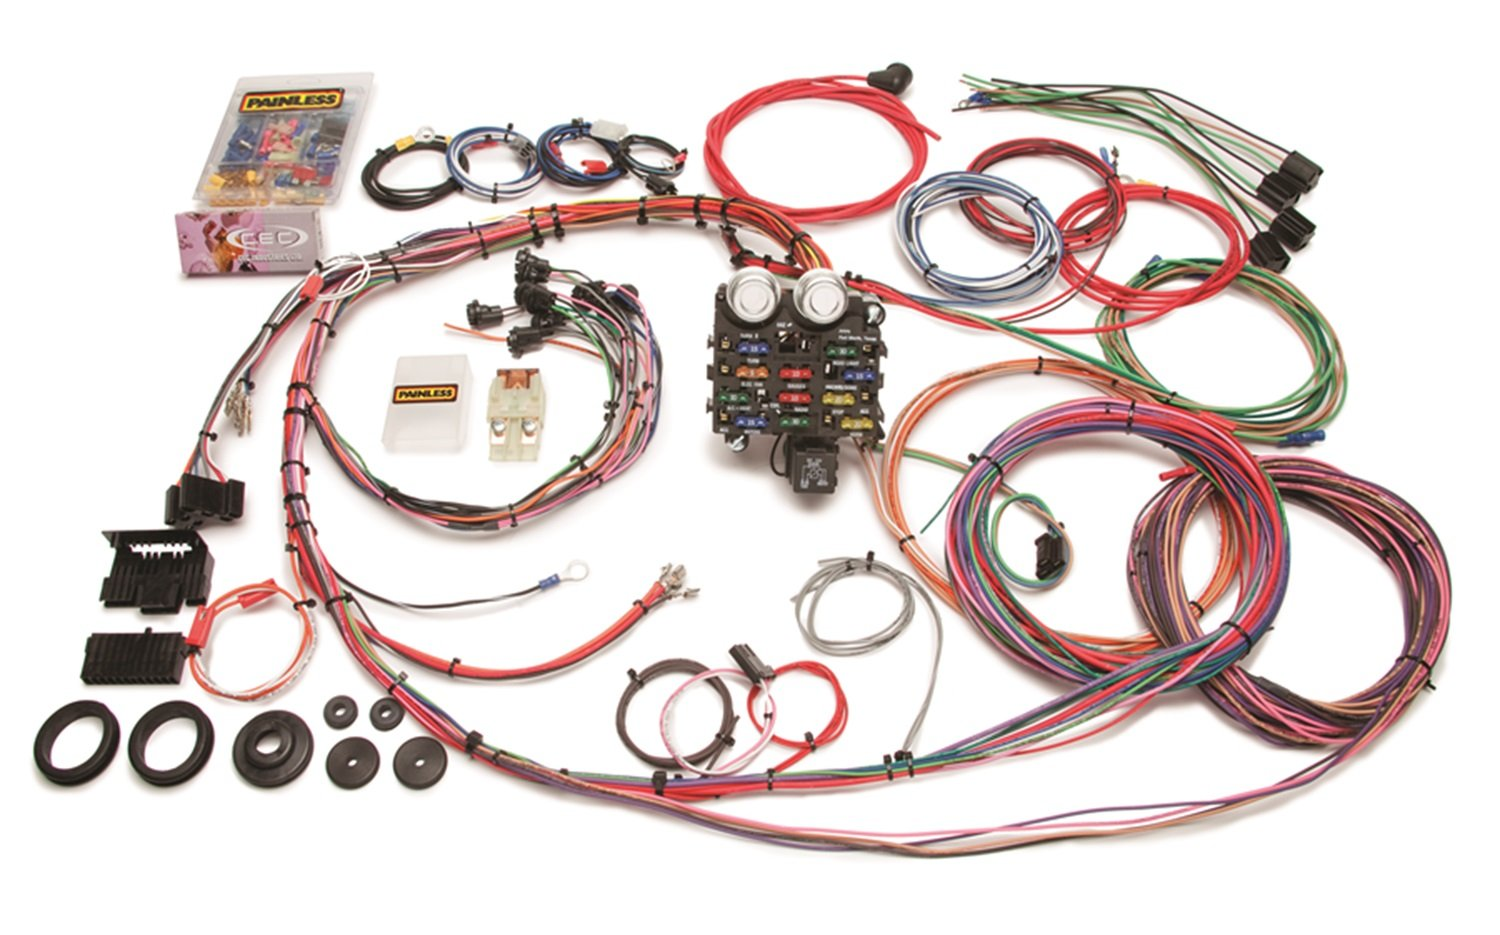 fj40 wiring harness painless web about wiring diagram u2022 rh autocircuitdiagram today